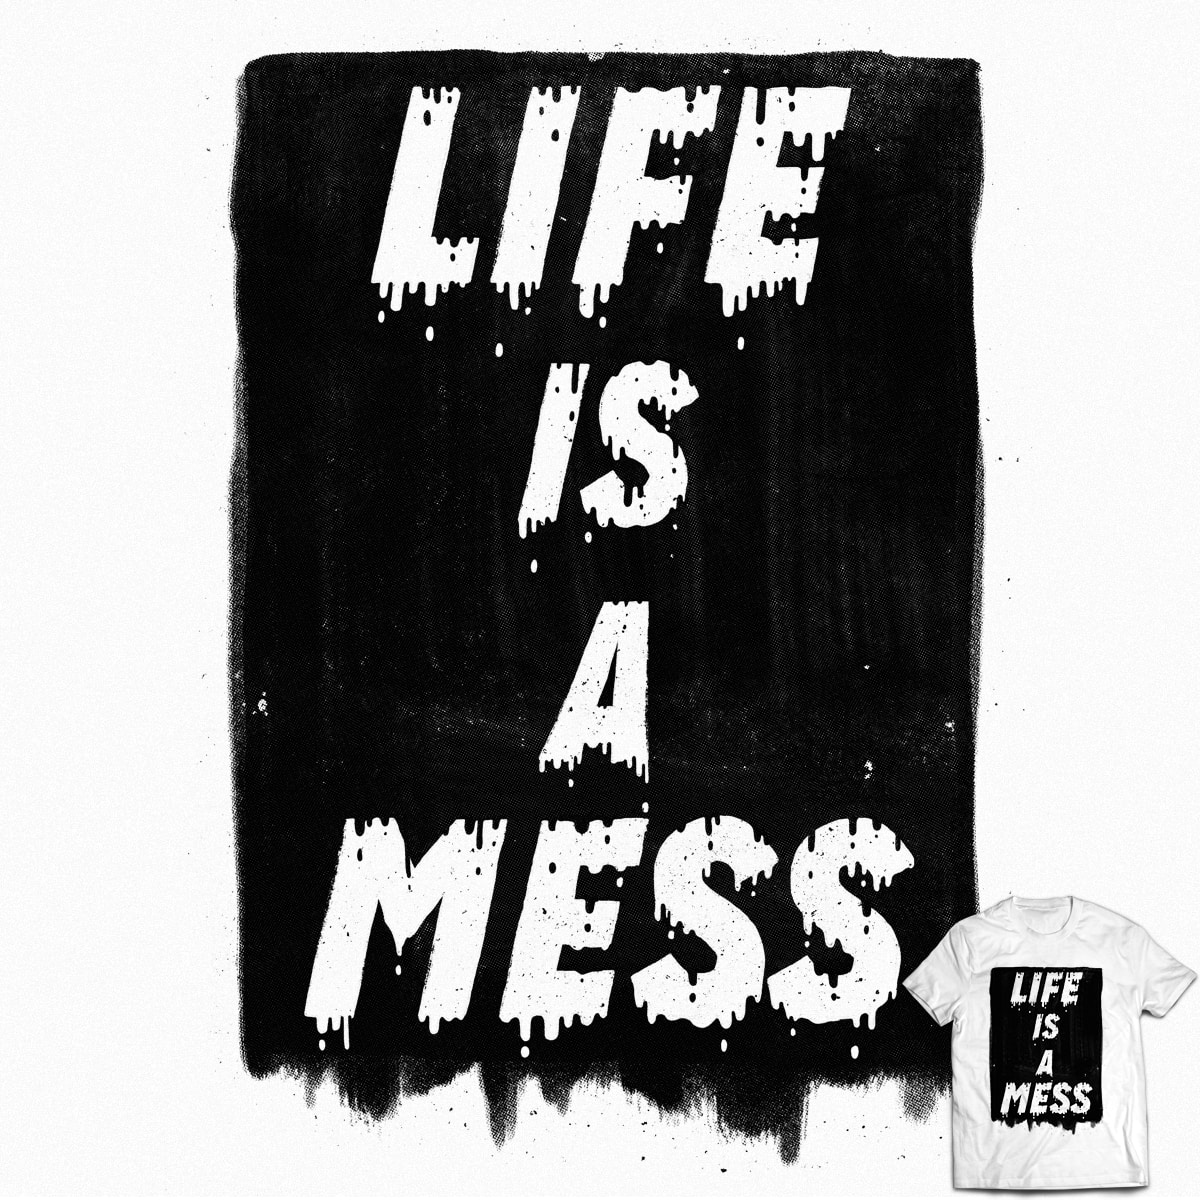 Life by lxromero on Threadless